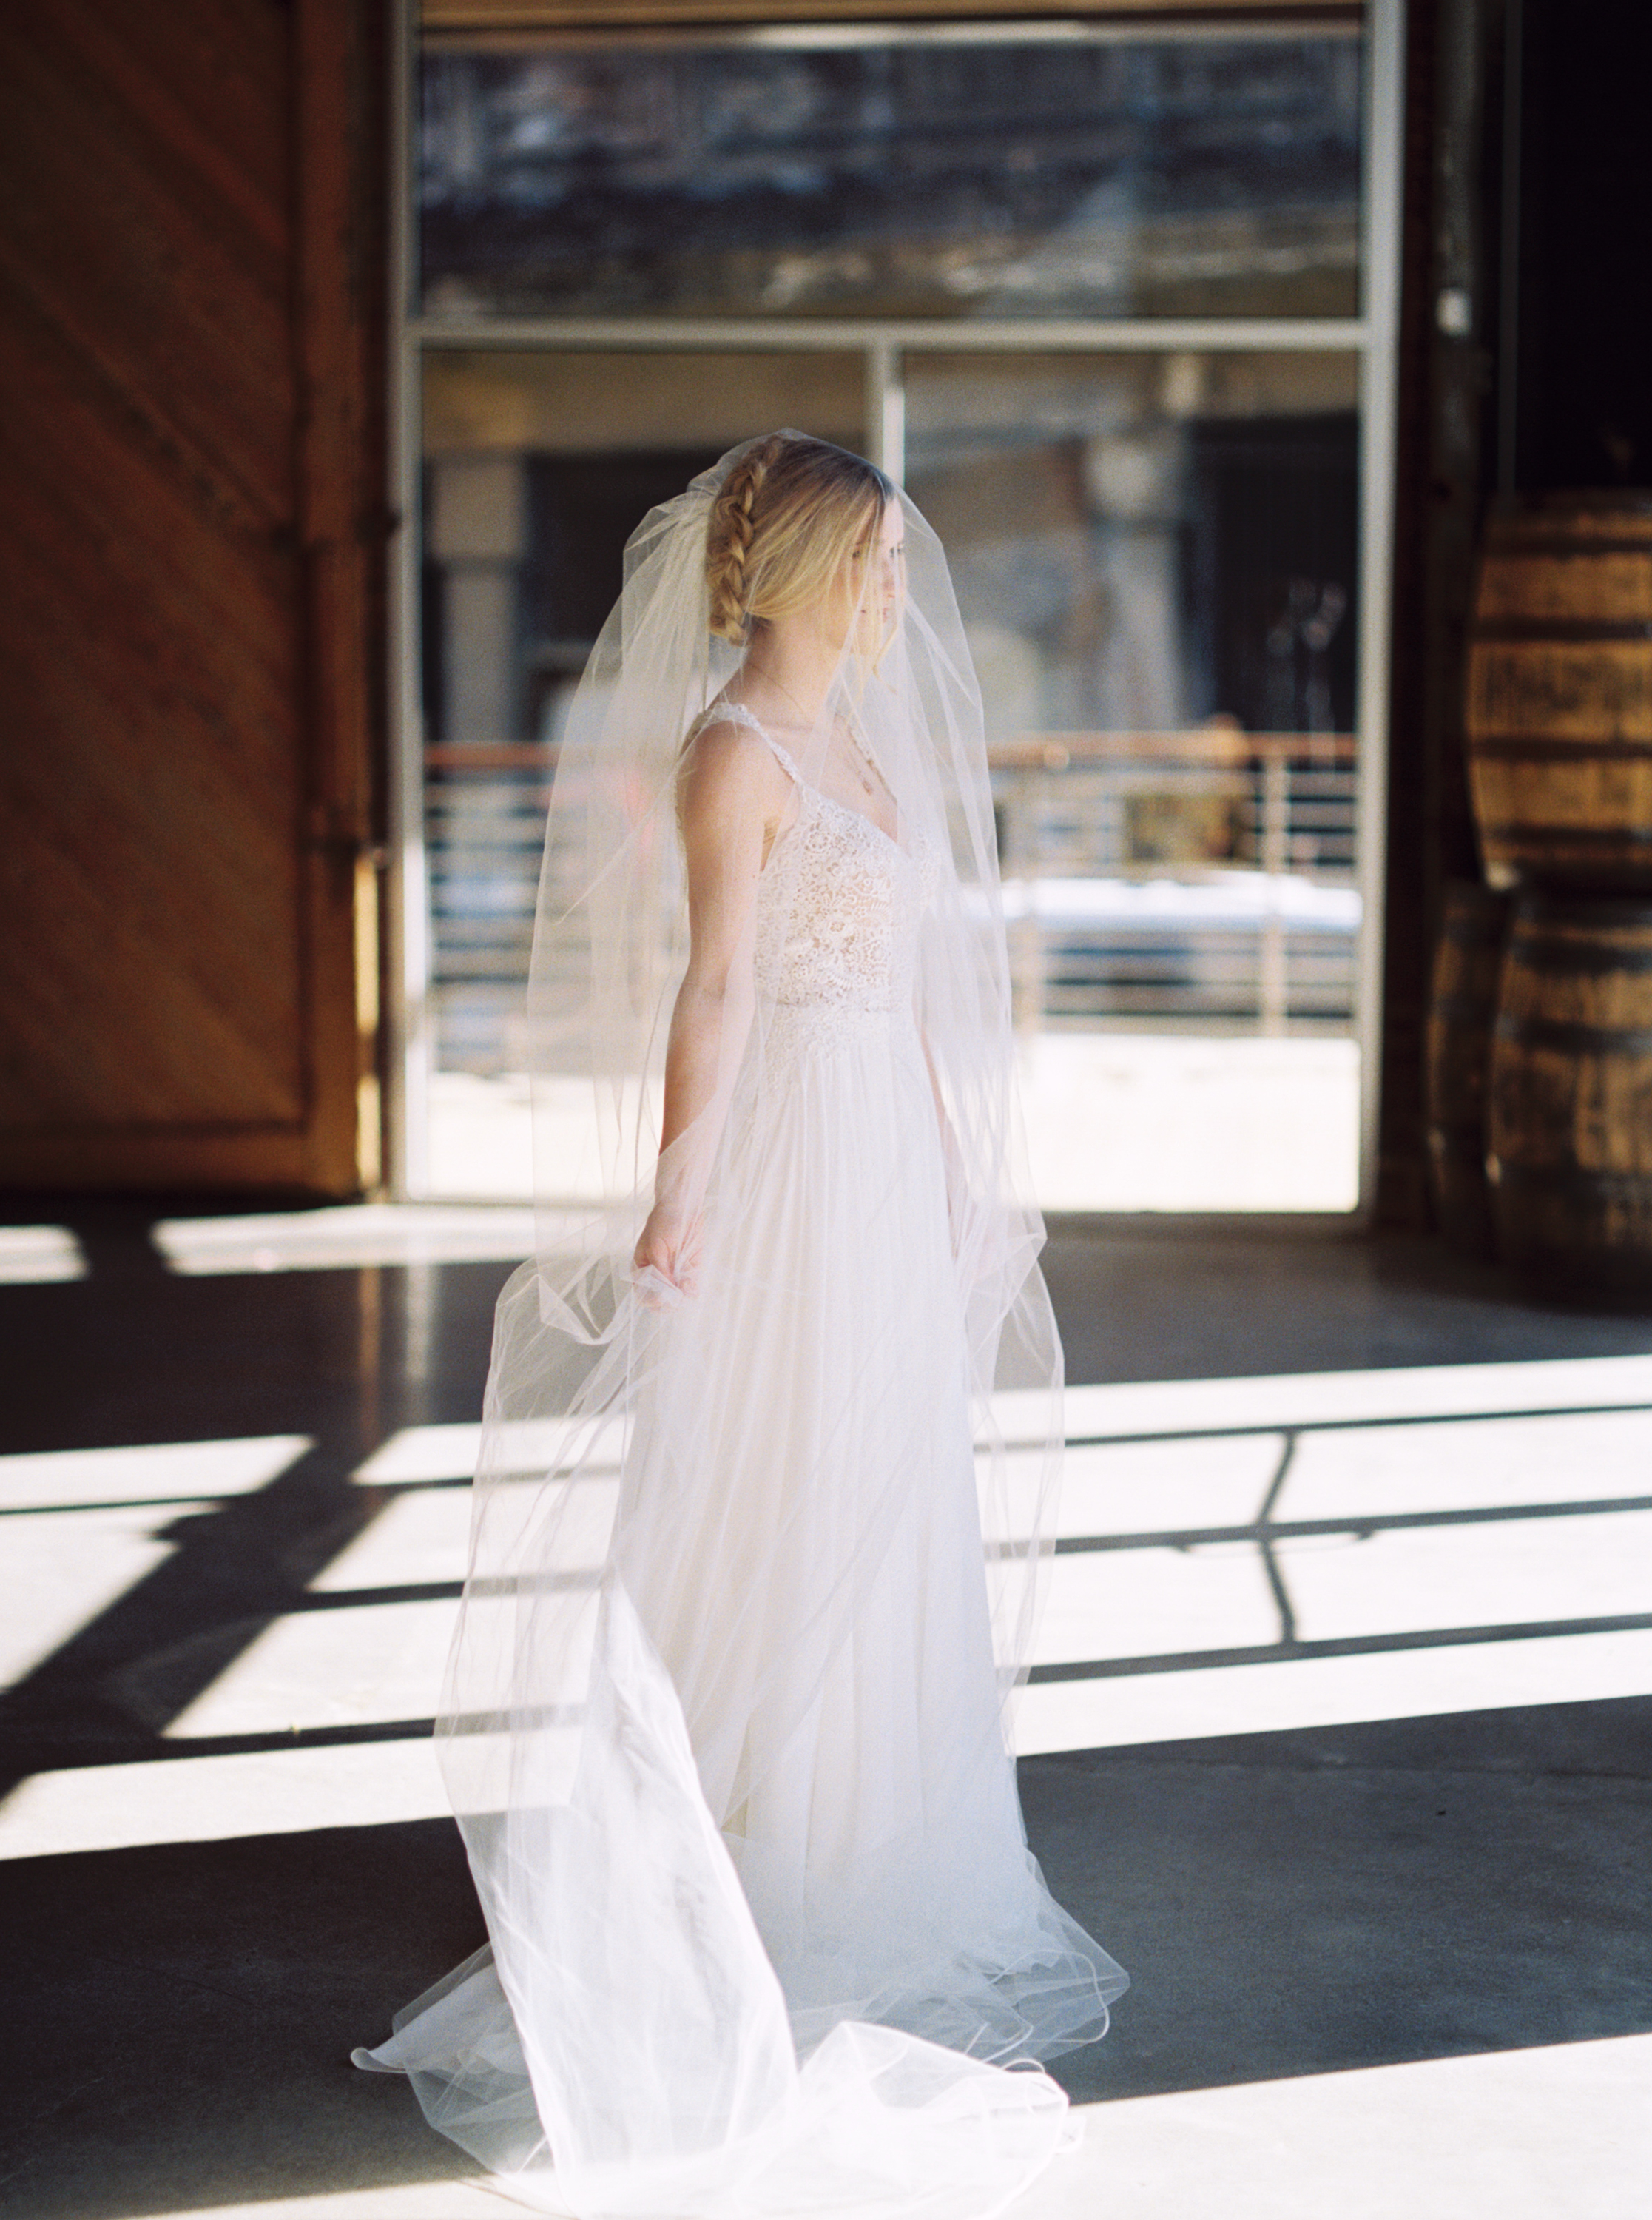 Abigail_Malone_Jackson_Terminal_Film_Wedding_Photography_Knoxville_Tennessee_Spring_Wedding-66.jpg